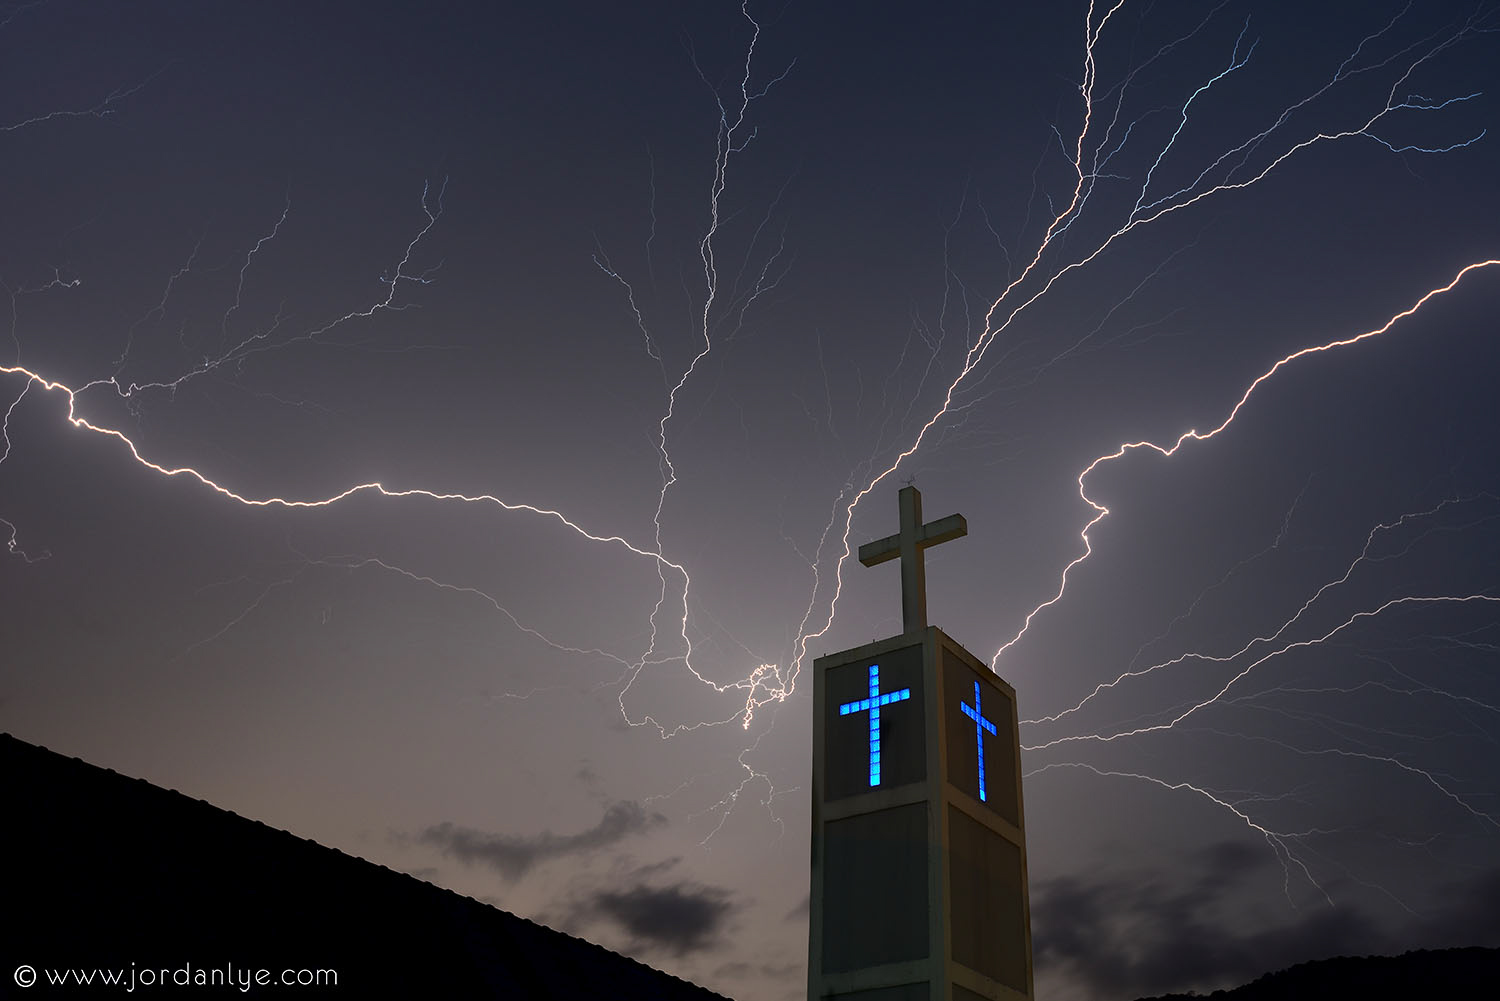 penang-chinese-methodist-church_landscape-photographer_lightning-season_jordan-lye-6.jpg